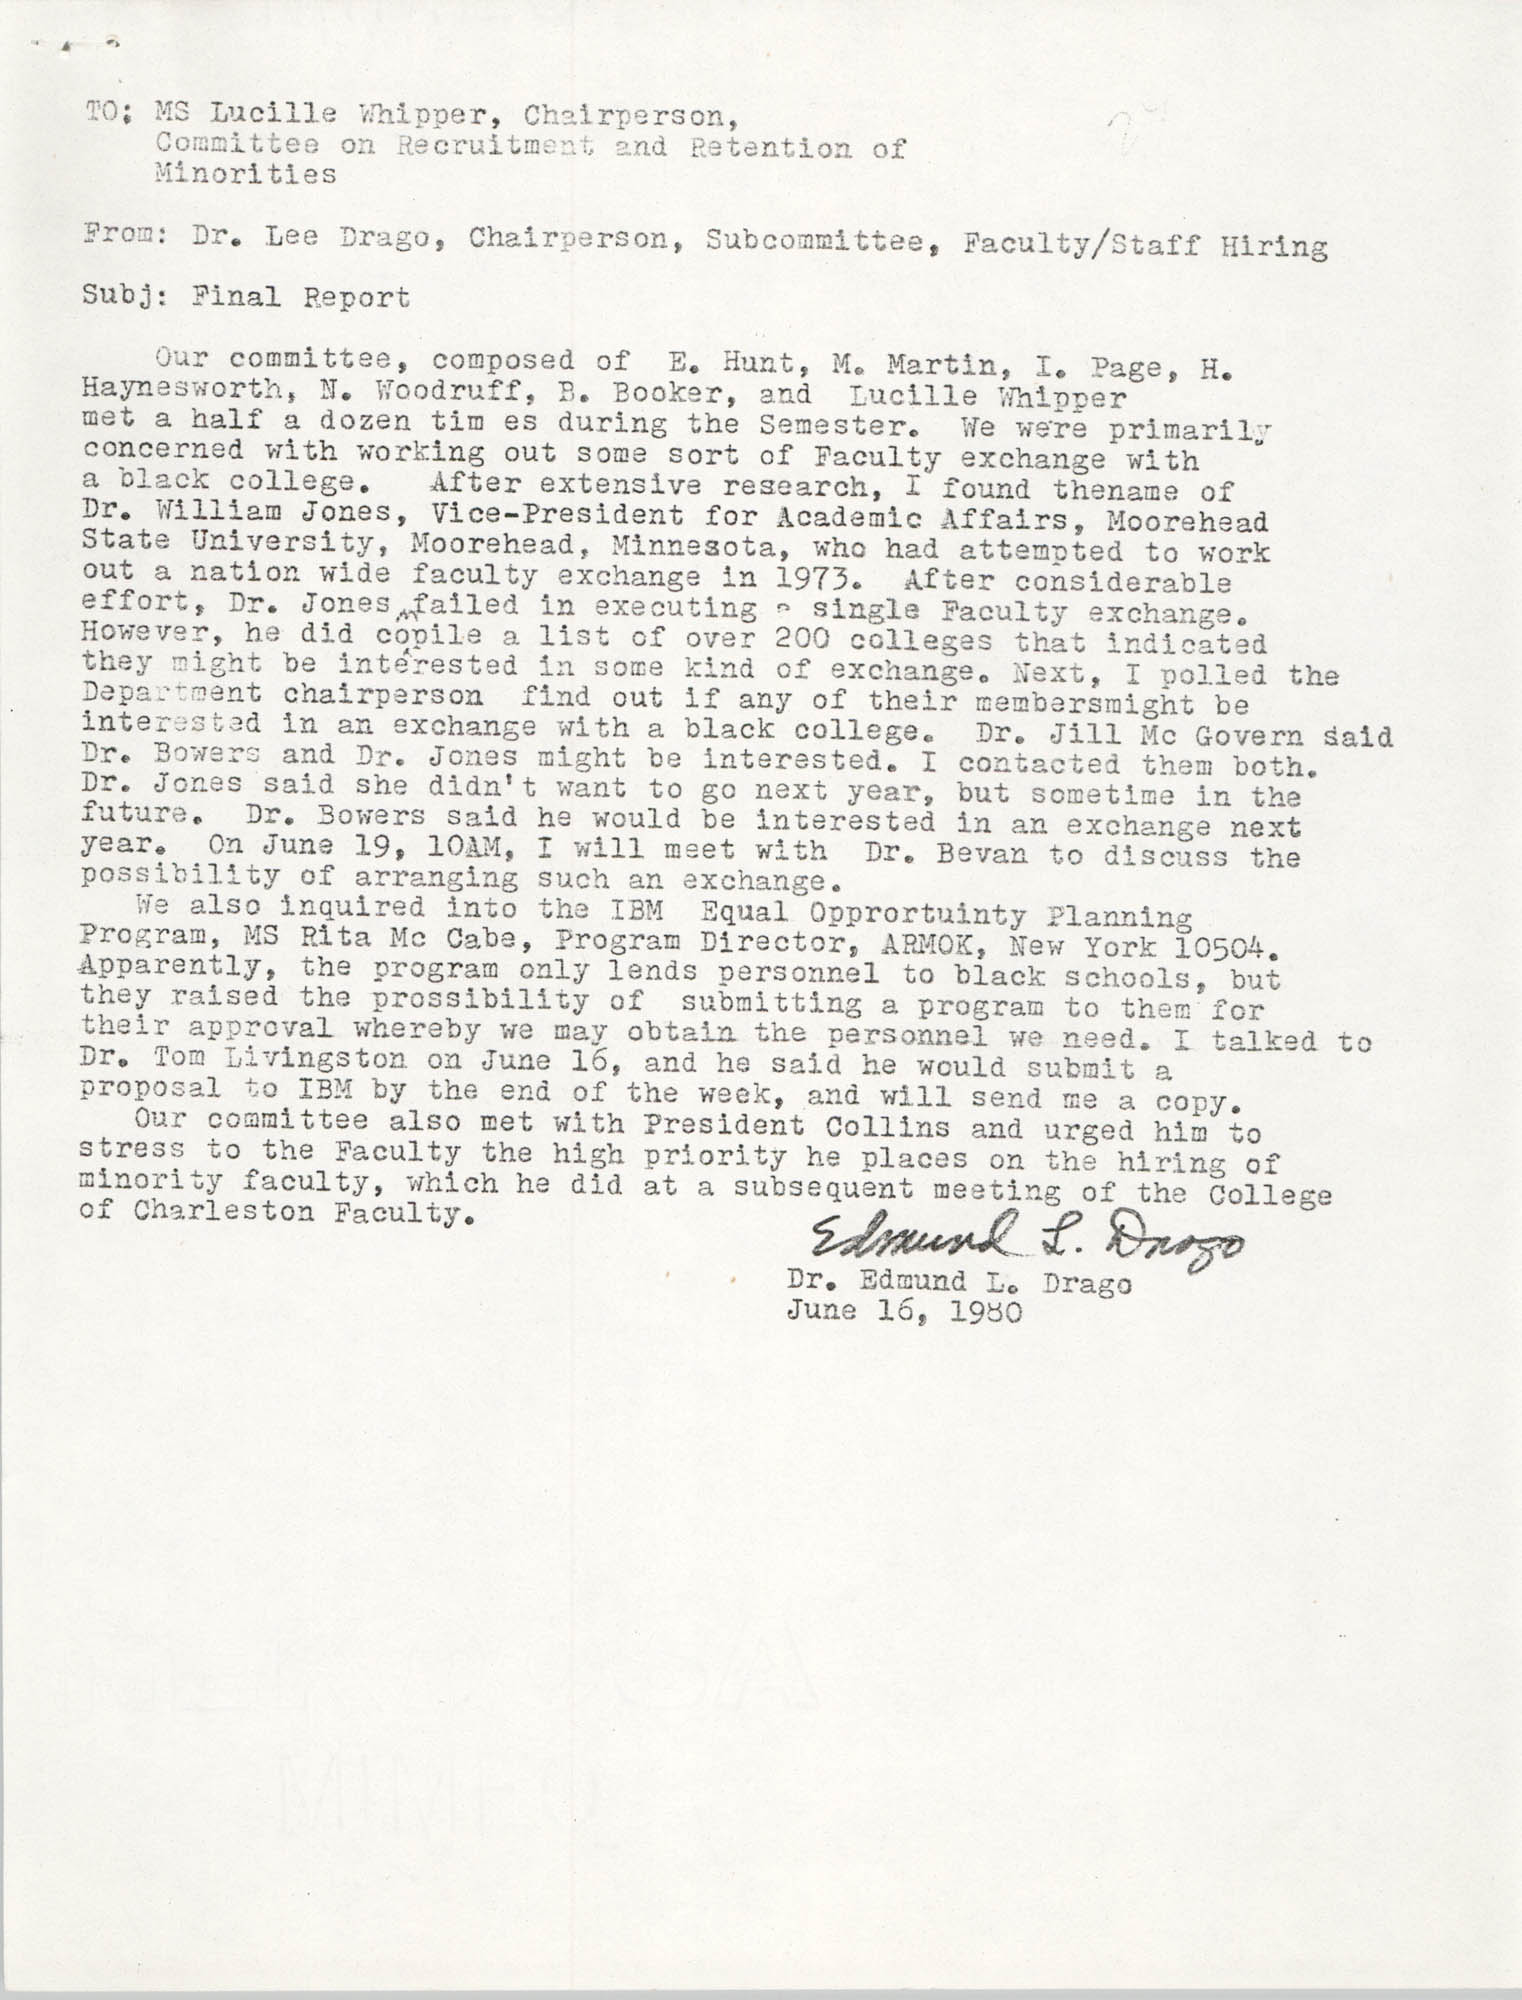 Letter from Edmund L. Drago to Lucille Whipper, June 1, 1980